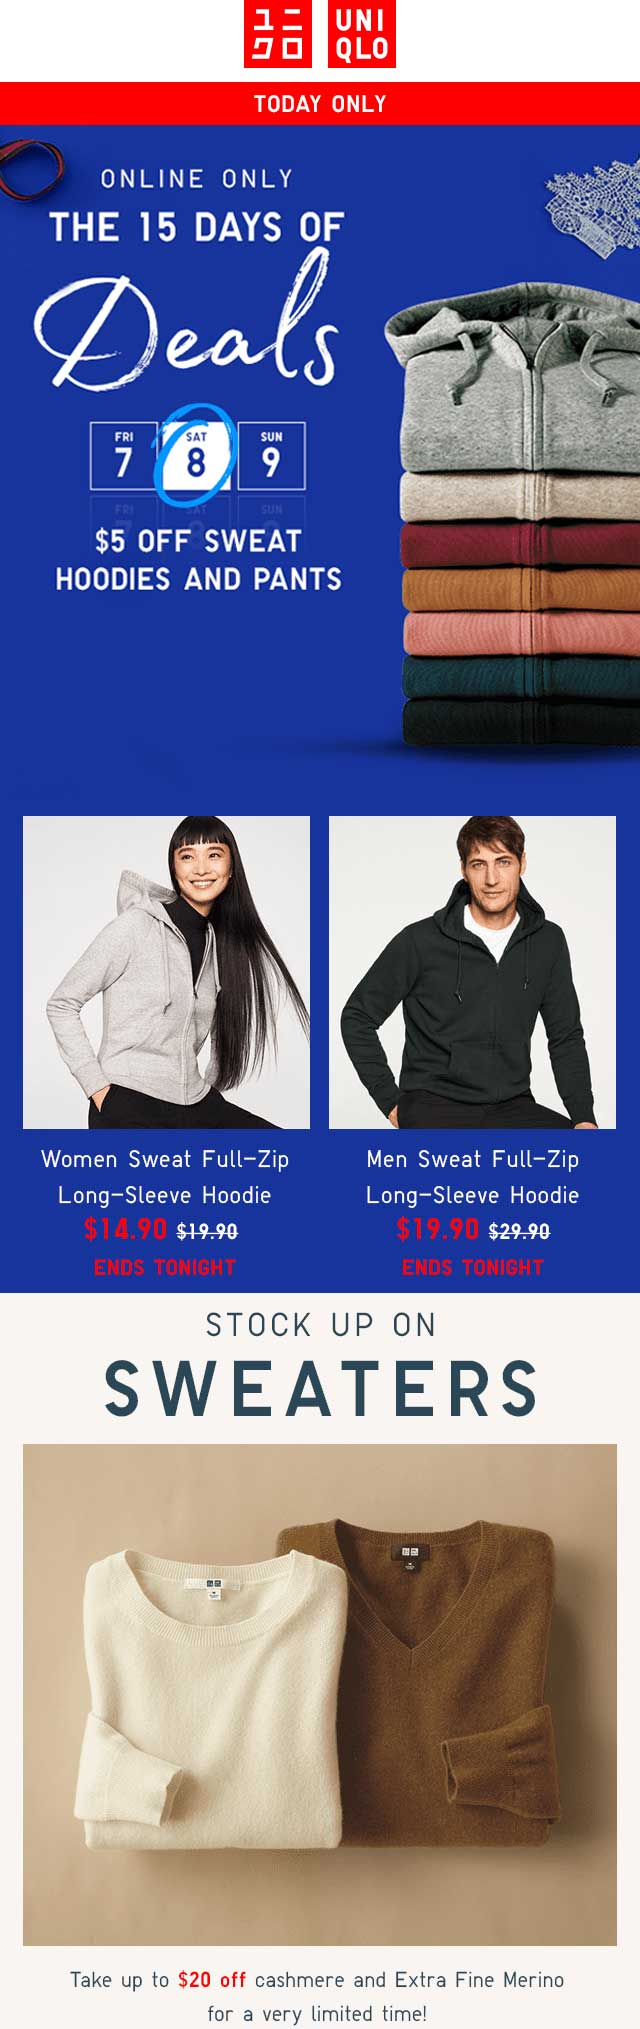 Uniqlo Coupon July 2019 $5 off sweats, $20 off wool sweaters today at Uniqlo, ditto online